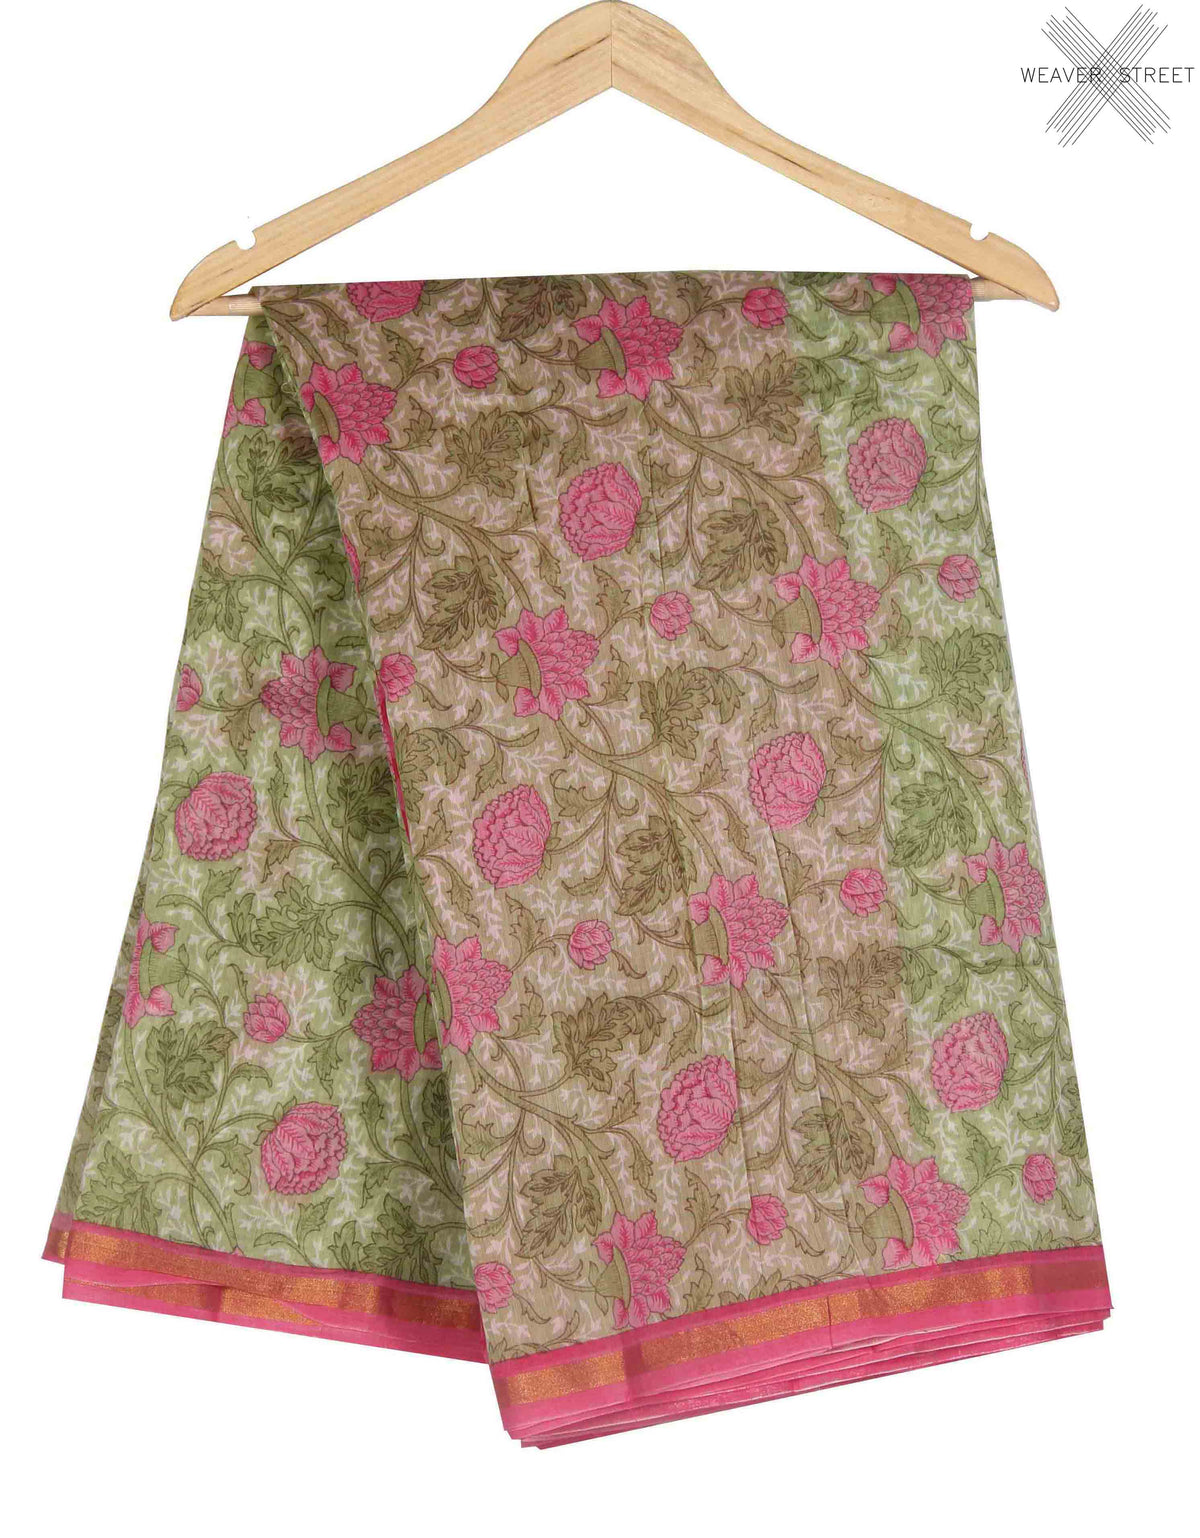 Light Green Silk Cotton Saree with Floral prints (1) main